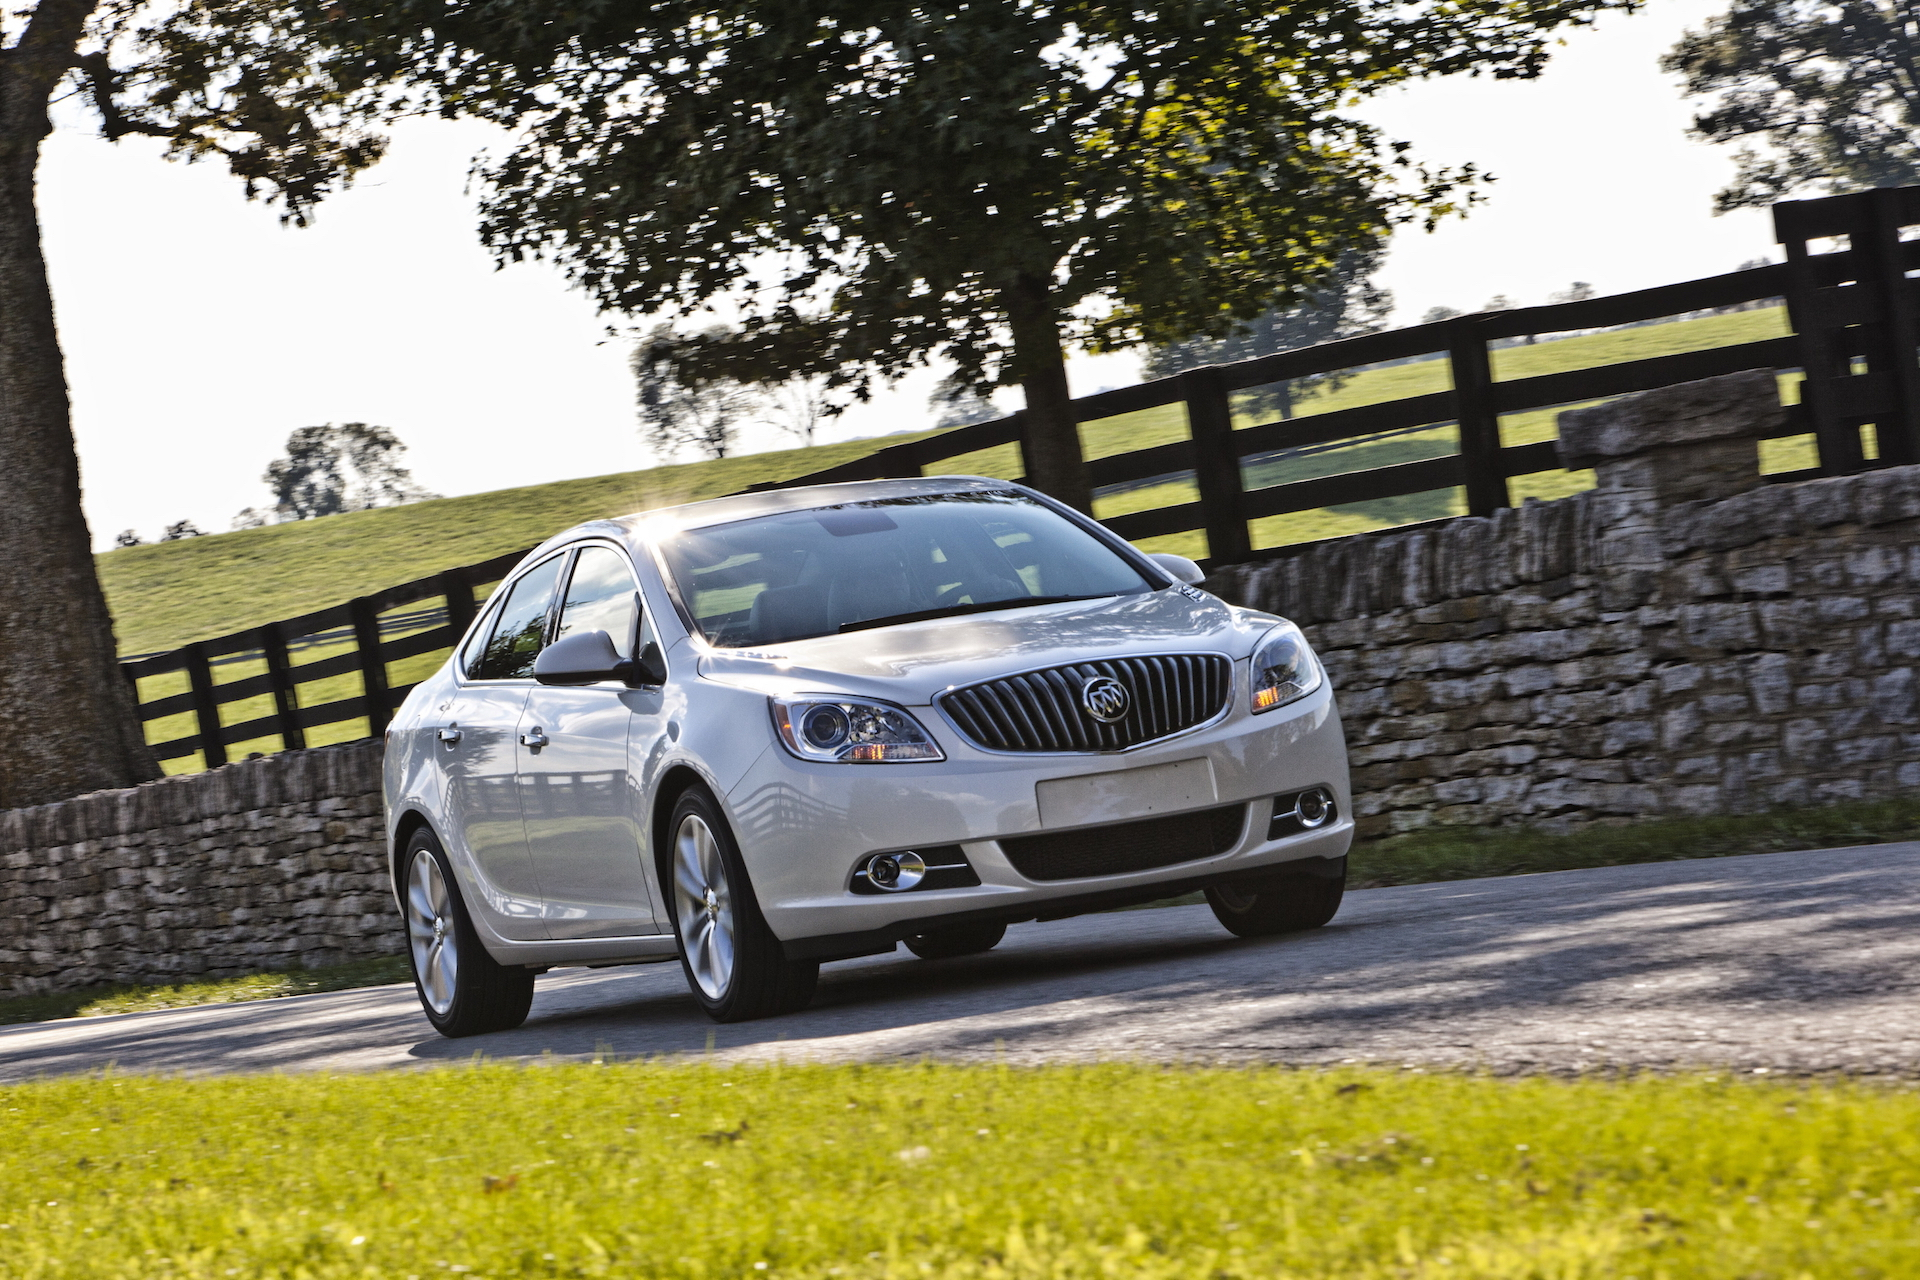 Buick Verano To Die As Yet Another Small Sedan Gives Way To Suvs 2021 Buick Verano Tire Size, Mpg, Gas Mileage